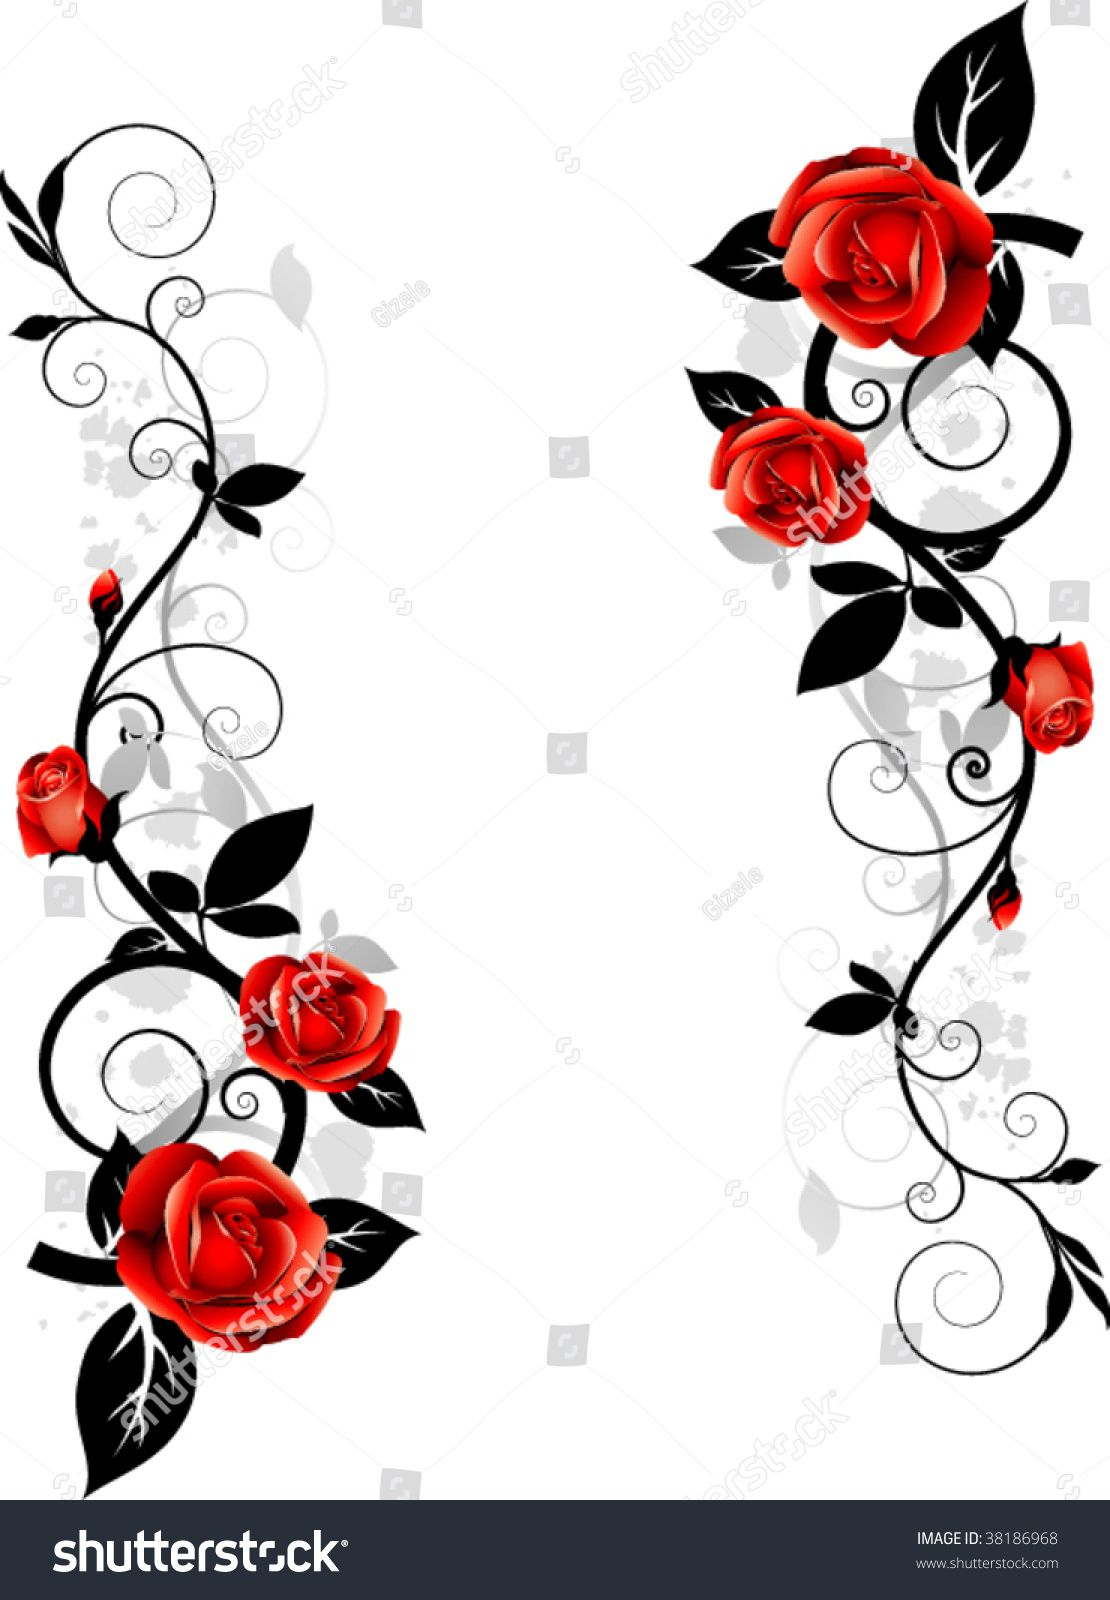 Vector Floral Design Ornament With Roses Rose Vine Tattoos Rose Tattoo Design Flower Drawing